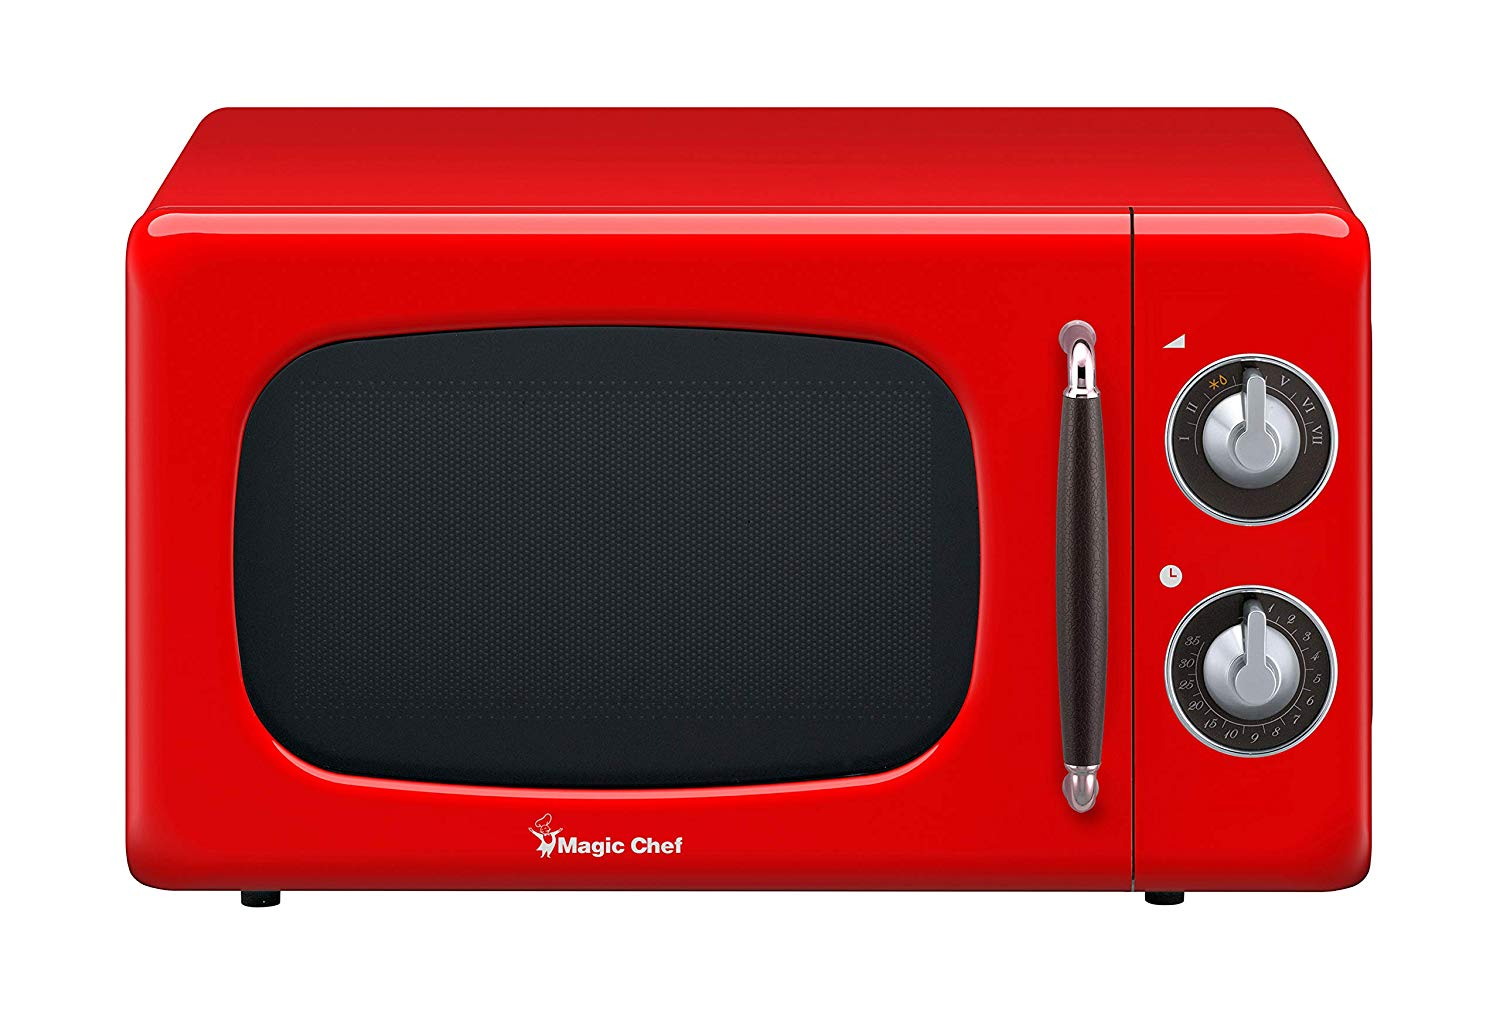 Magic Chef MCD770CR 0.7-Cu. Ft. 700W Retro Countertop Microwave Oven in Red.7 Cu.Ft